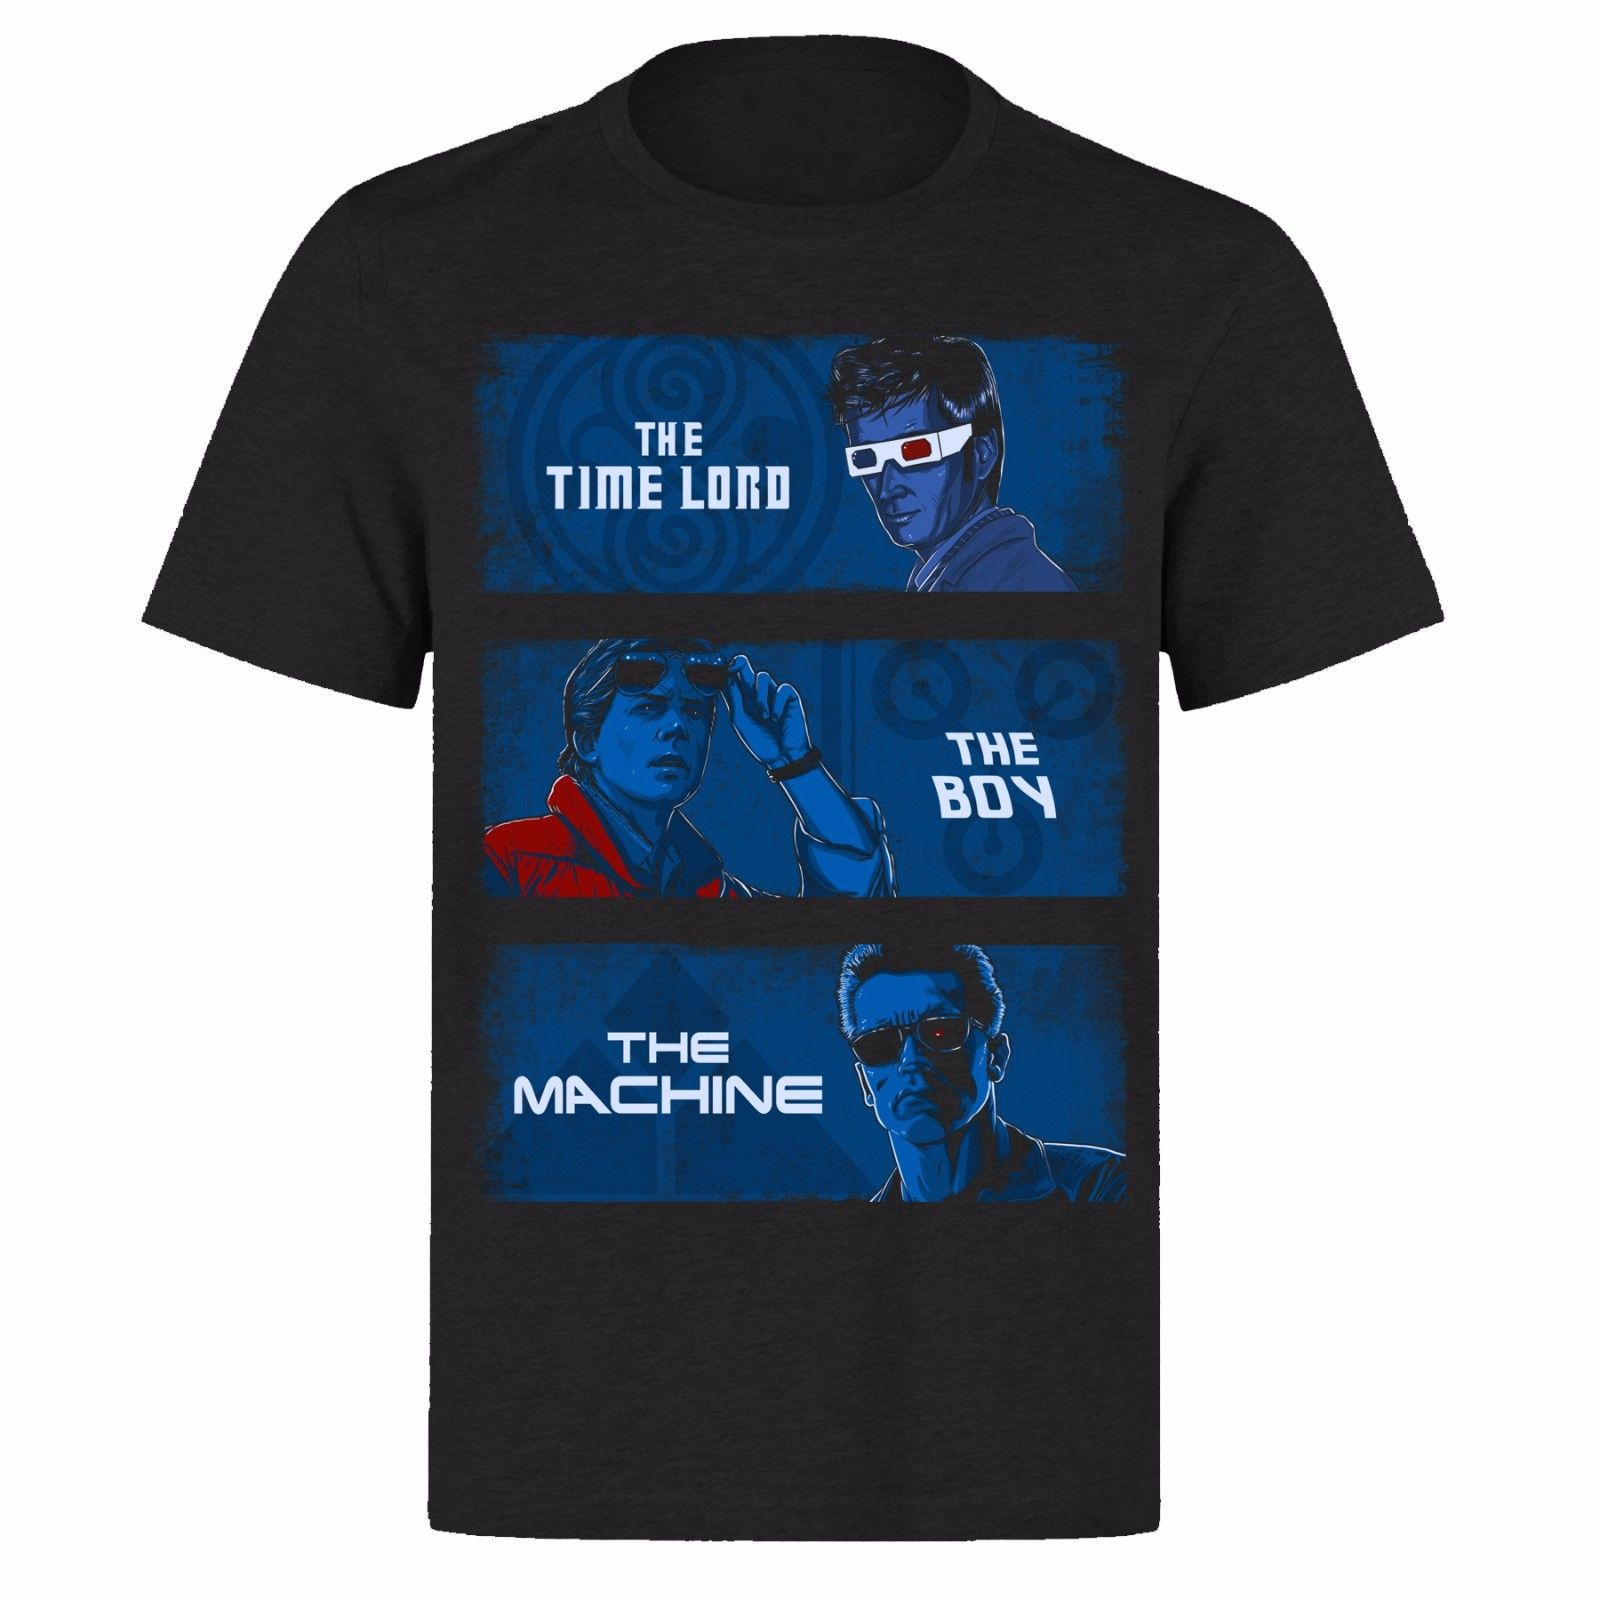 TIME TRAVELERS THE TIME LORD THE BOY THE MACHINE UNISEX BLACK PH52 T-SHIRT T-Shirt Male Hipster Tops